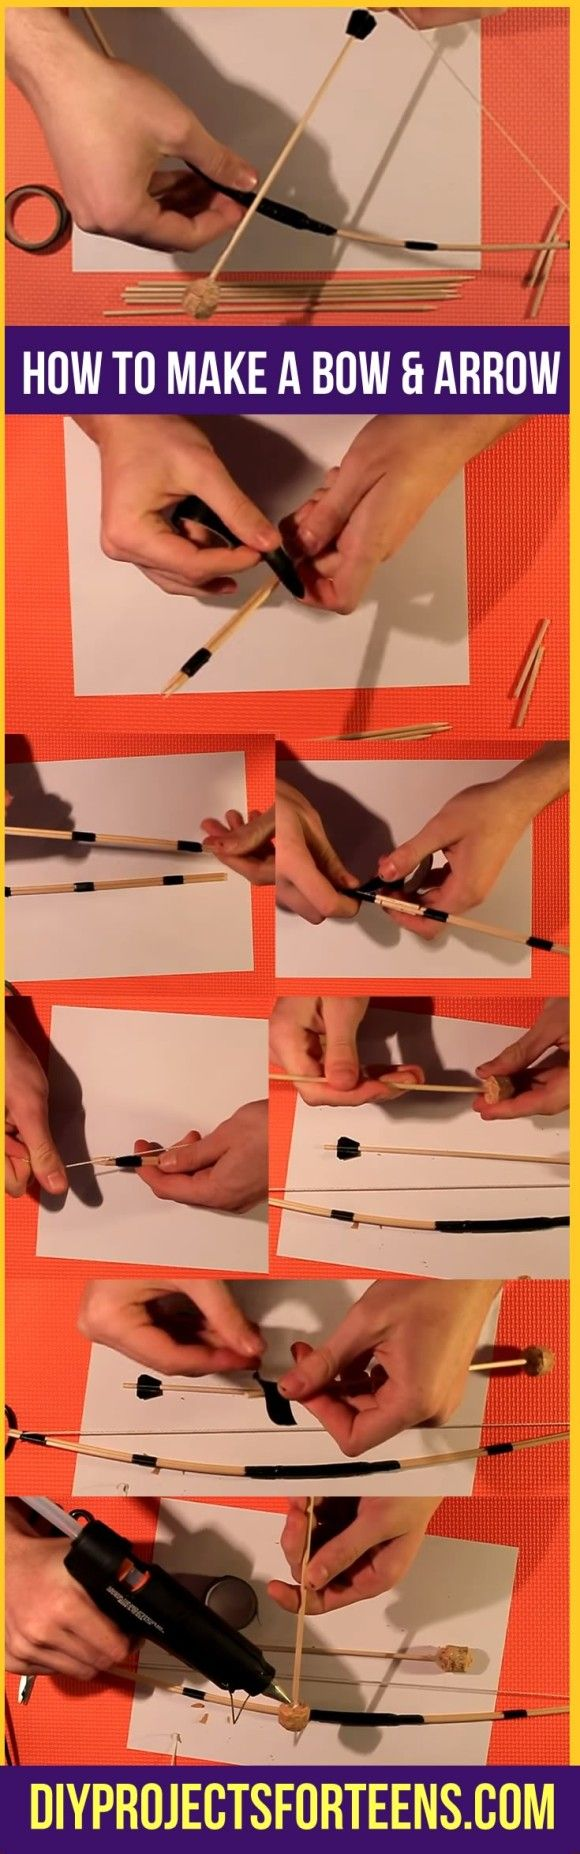 Cool DIY Crafts for Teens and Tweens   How To Make A Bow and Arrow   Mini DIY Bow and Arrow Tutorial and Video